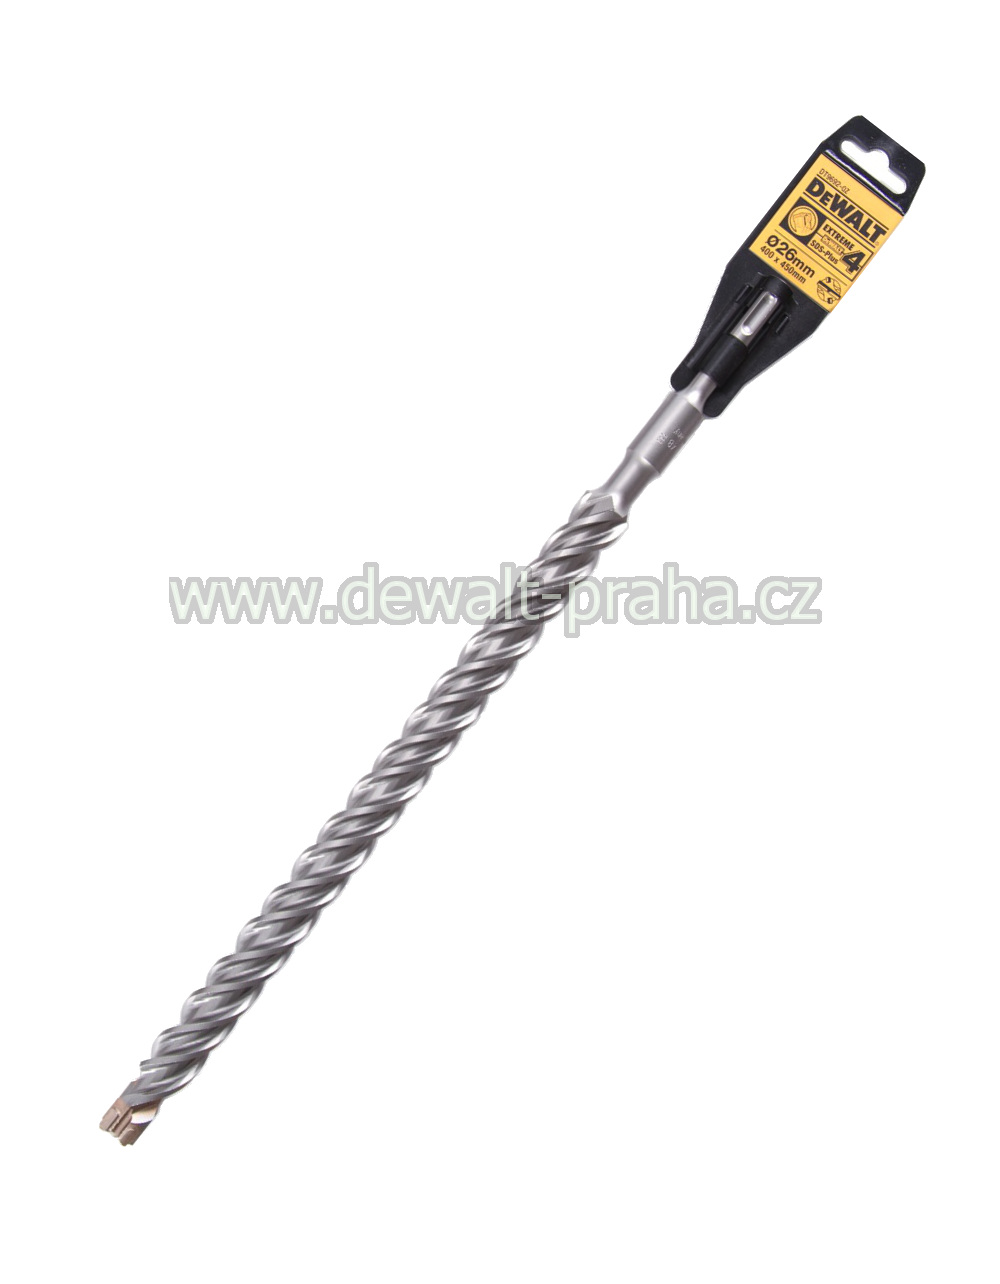 DT9692 DeWALT Vrták do betonu SDS Plus 4břitý 26 x 450mm